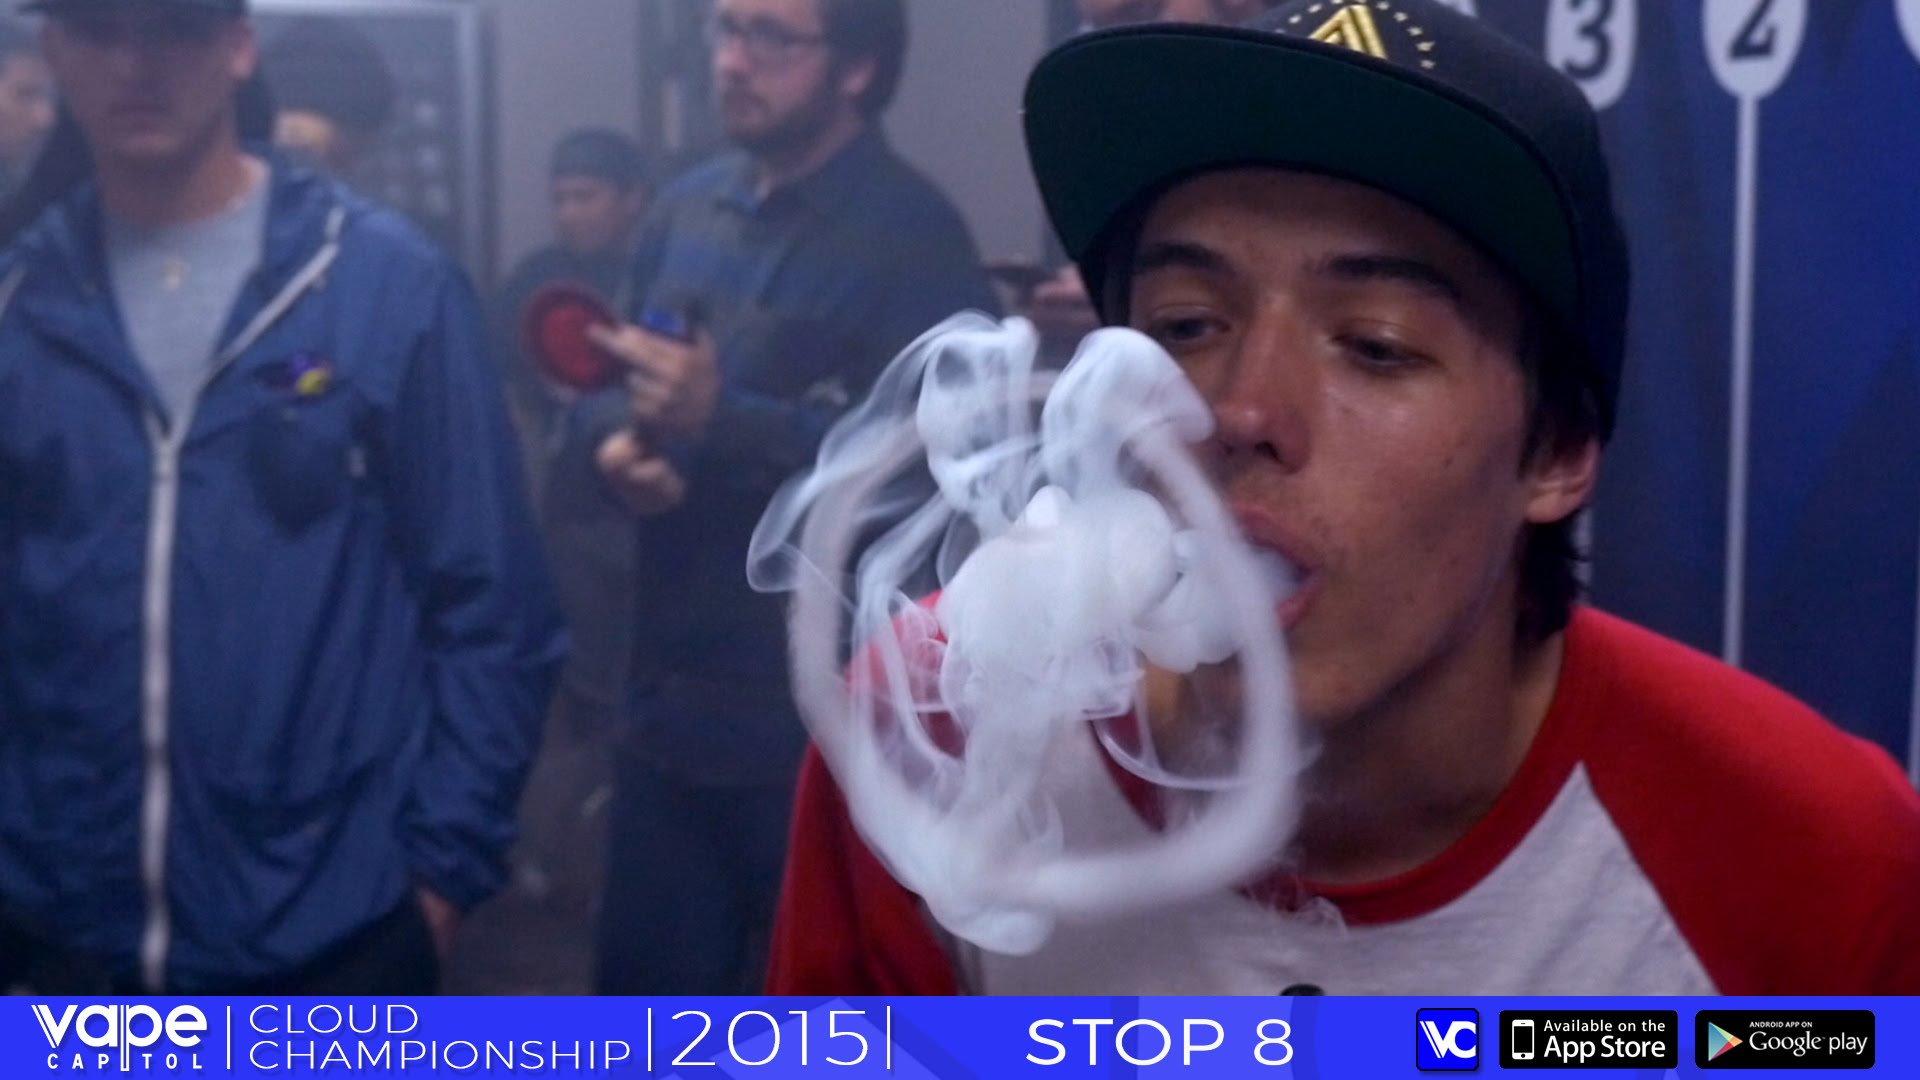 VC Cloud Championships – Flawless – Vape Tricks